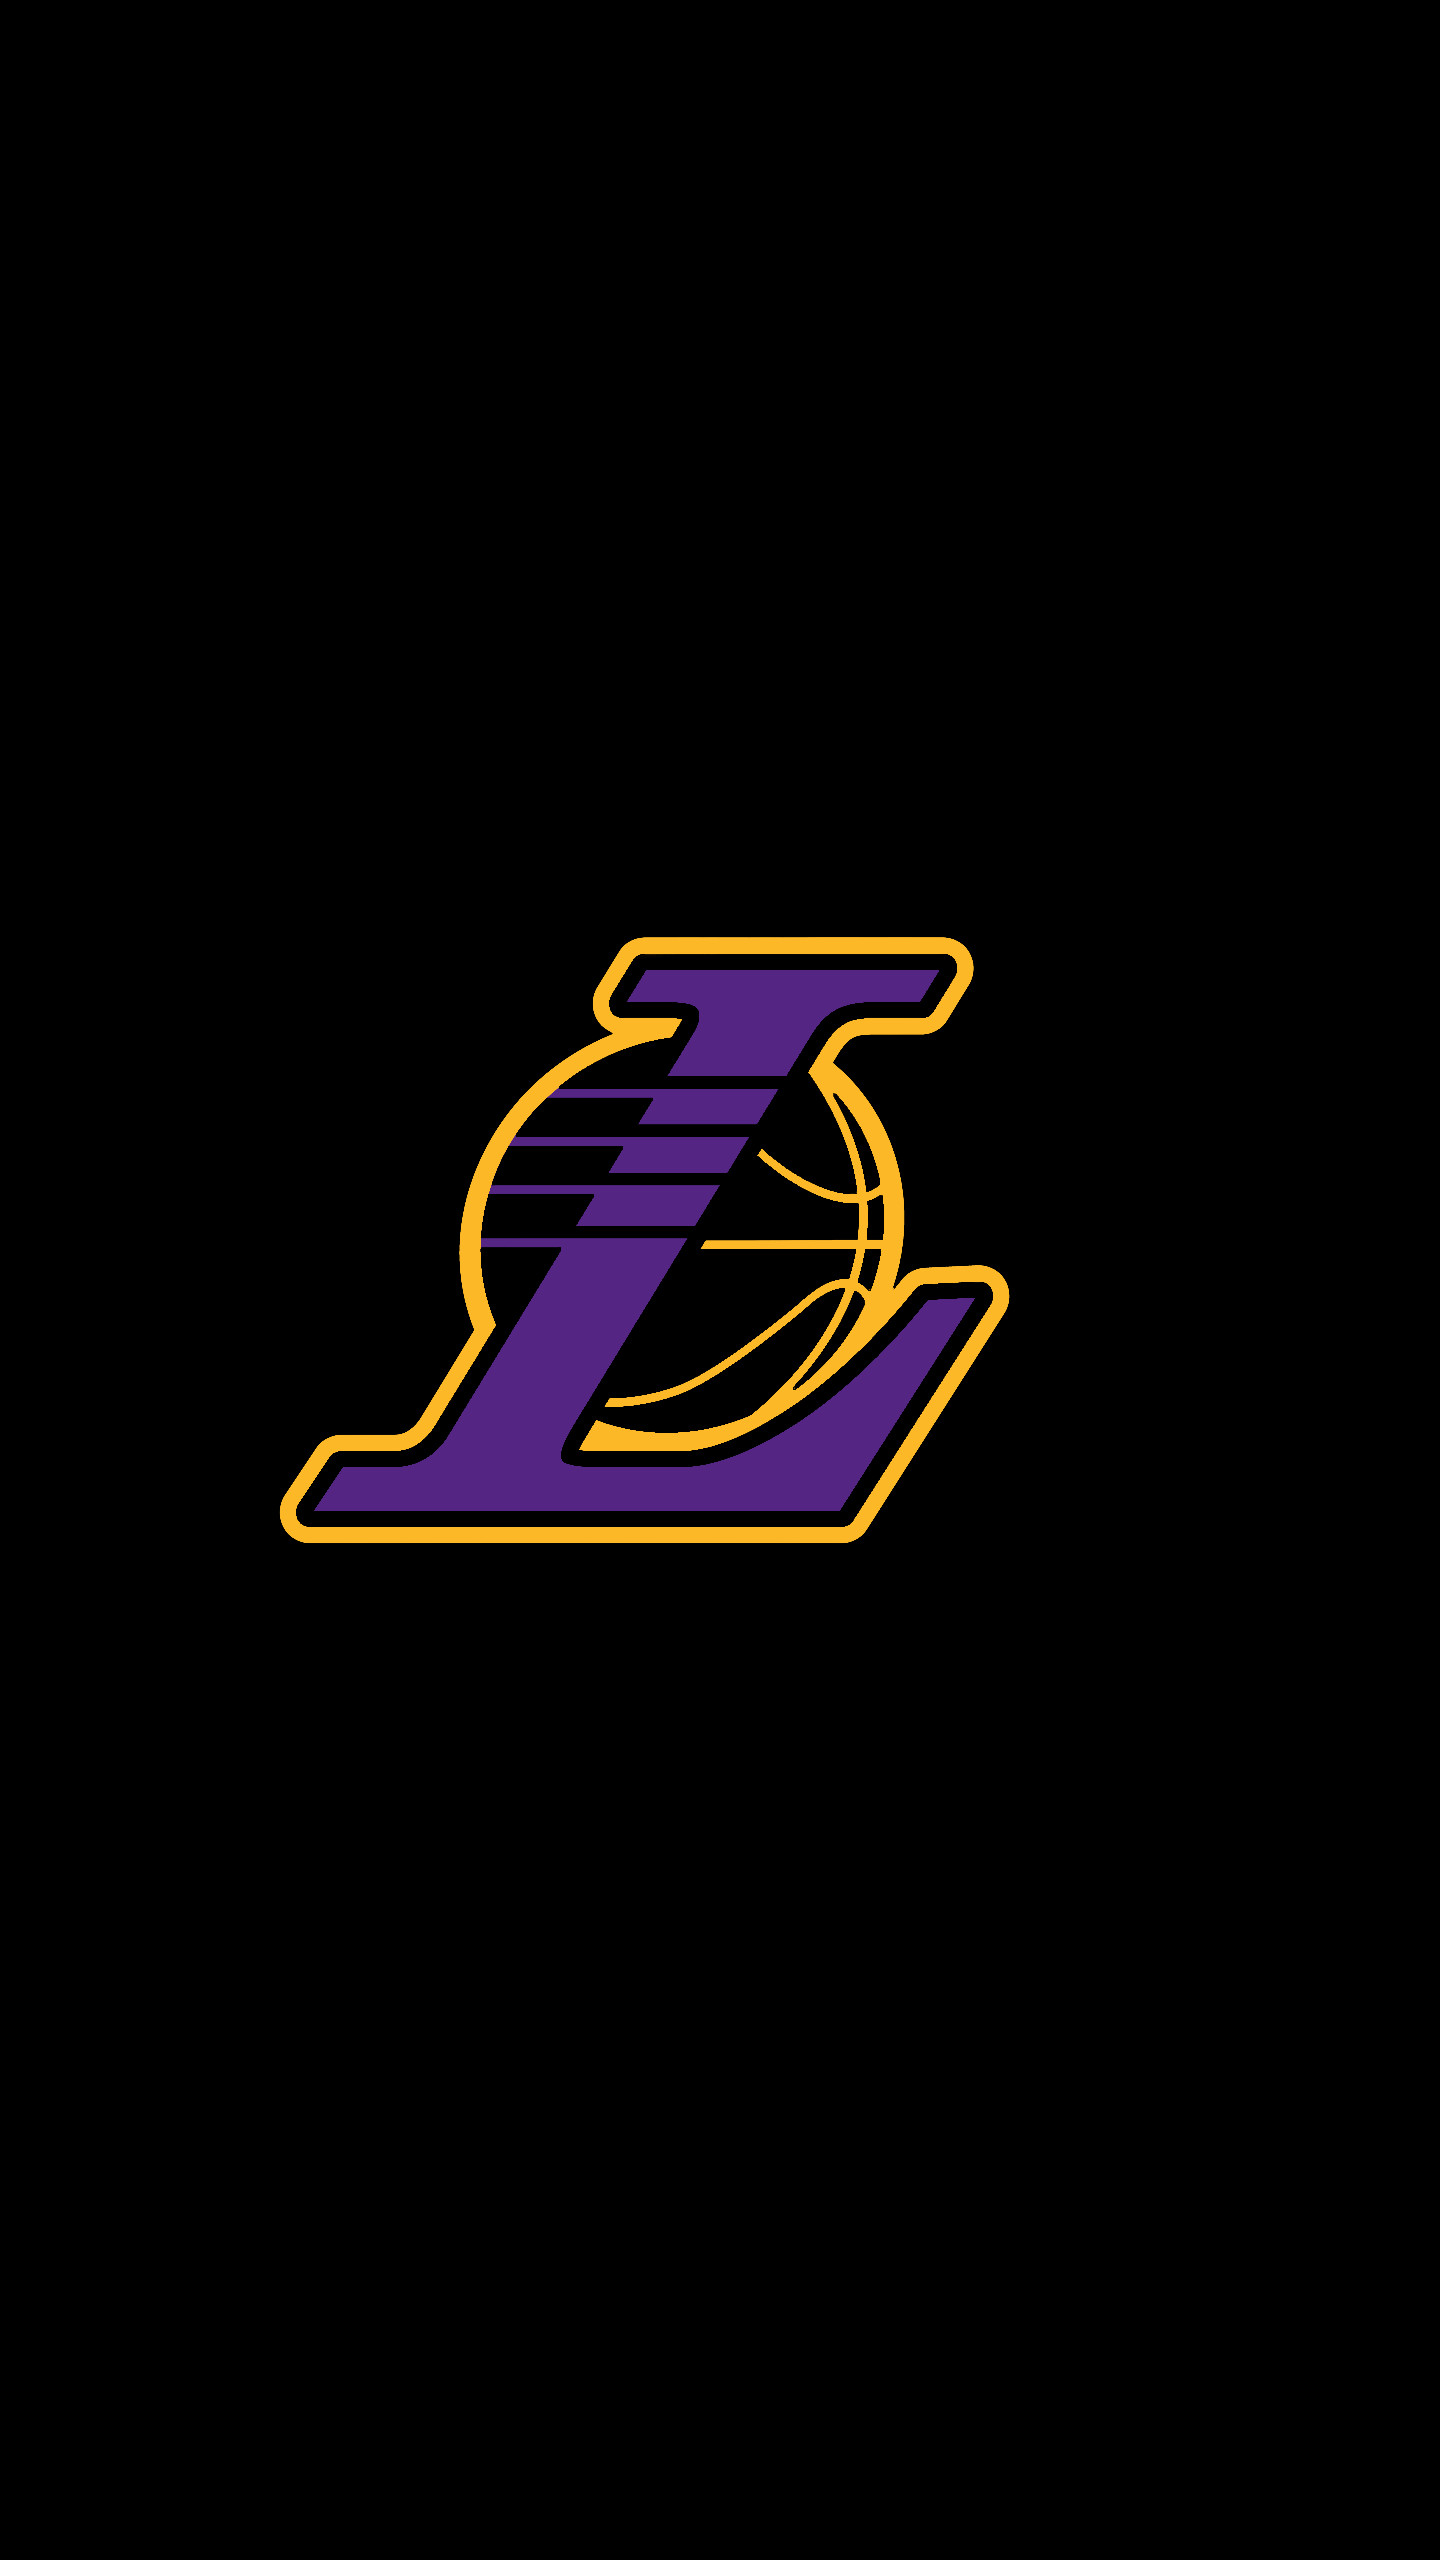 Lakers images background - Black lakers logo ...